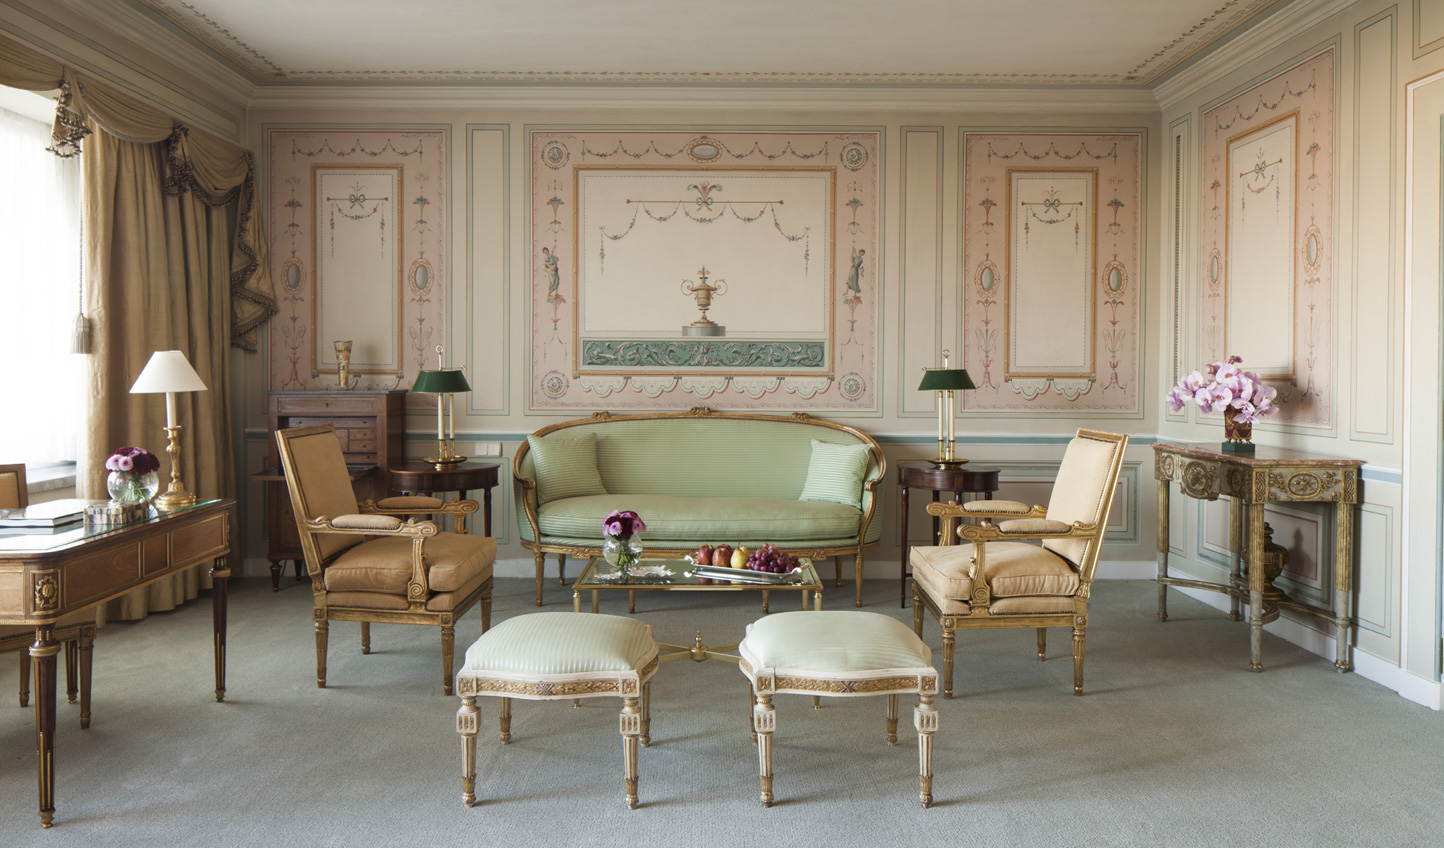 A Suite fit for Royalty